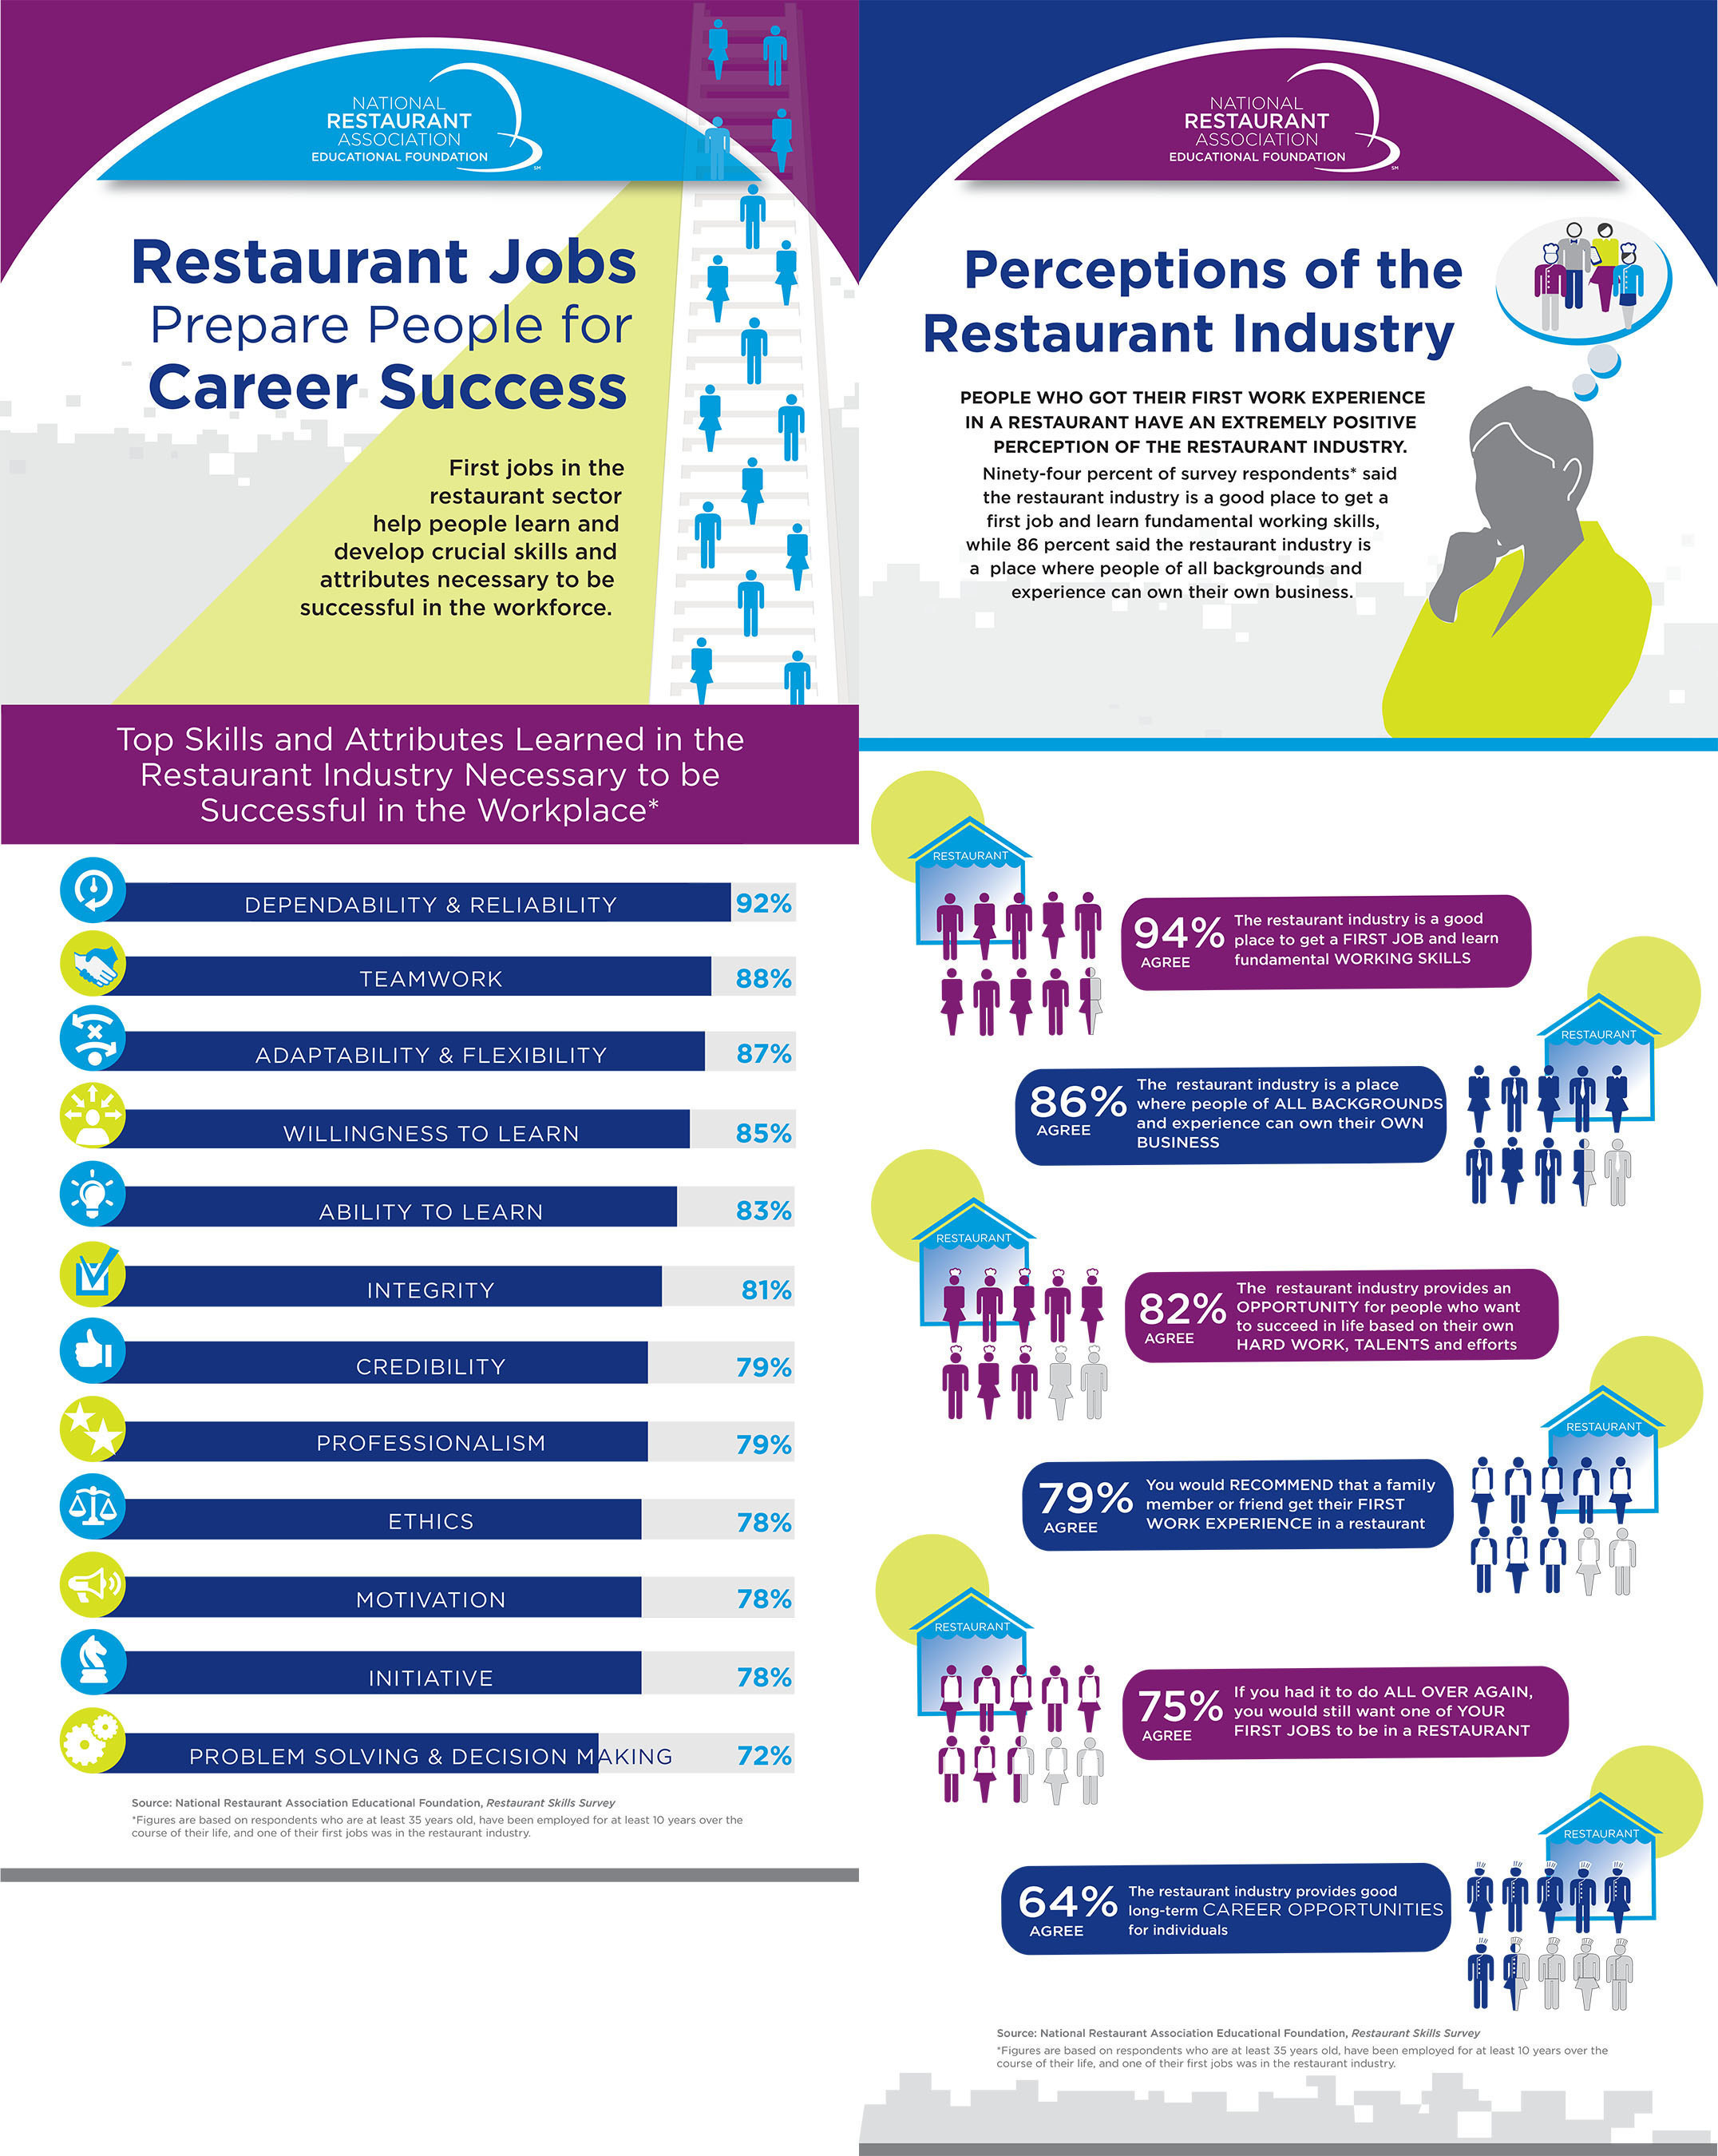 Research completed by the National Restaurant Association Educational Foundation shows that first jobs in the restaurant sector help people learn and develop crucial skills and attributes necessary to be successful in the workforce.